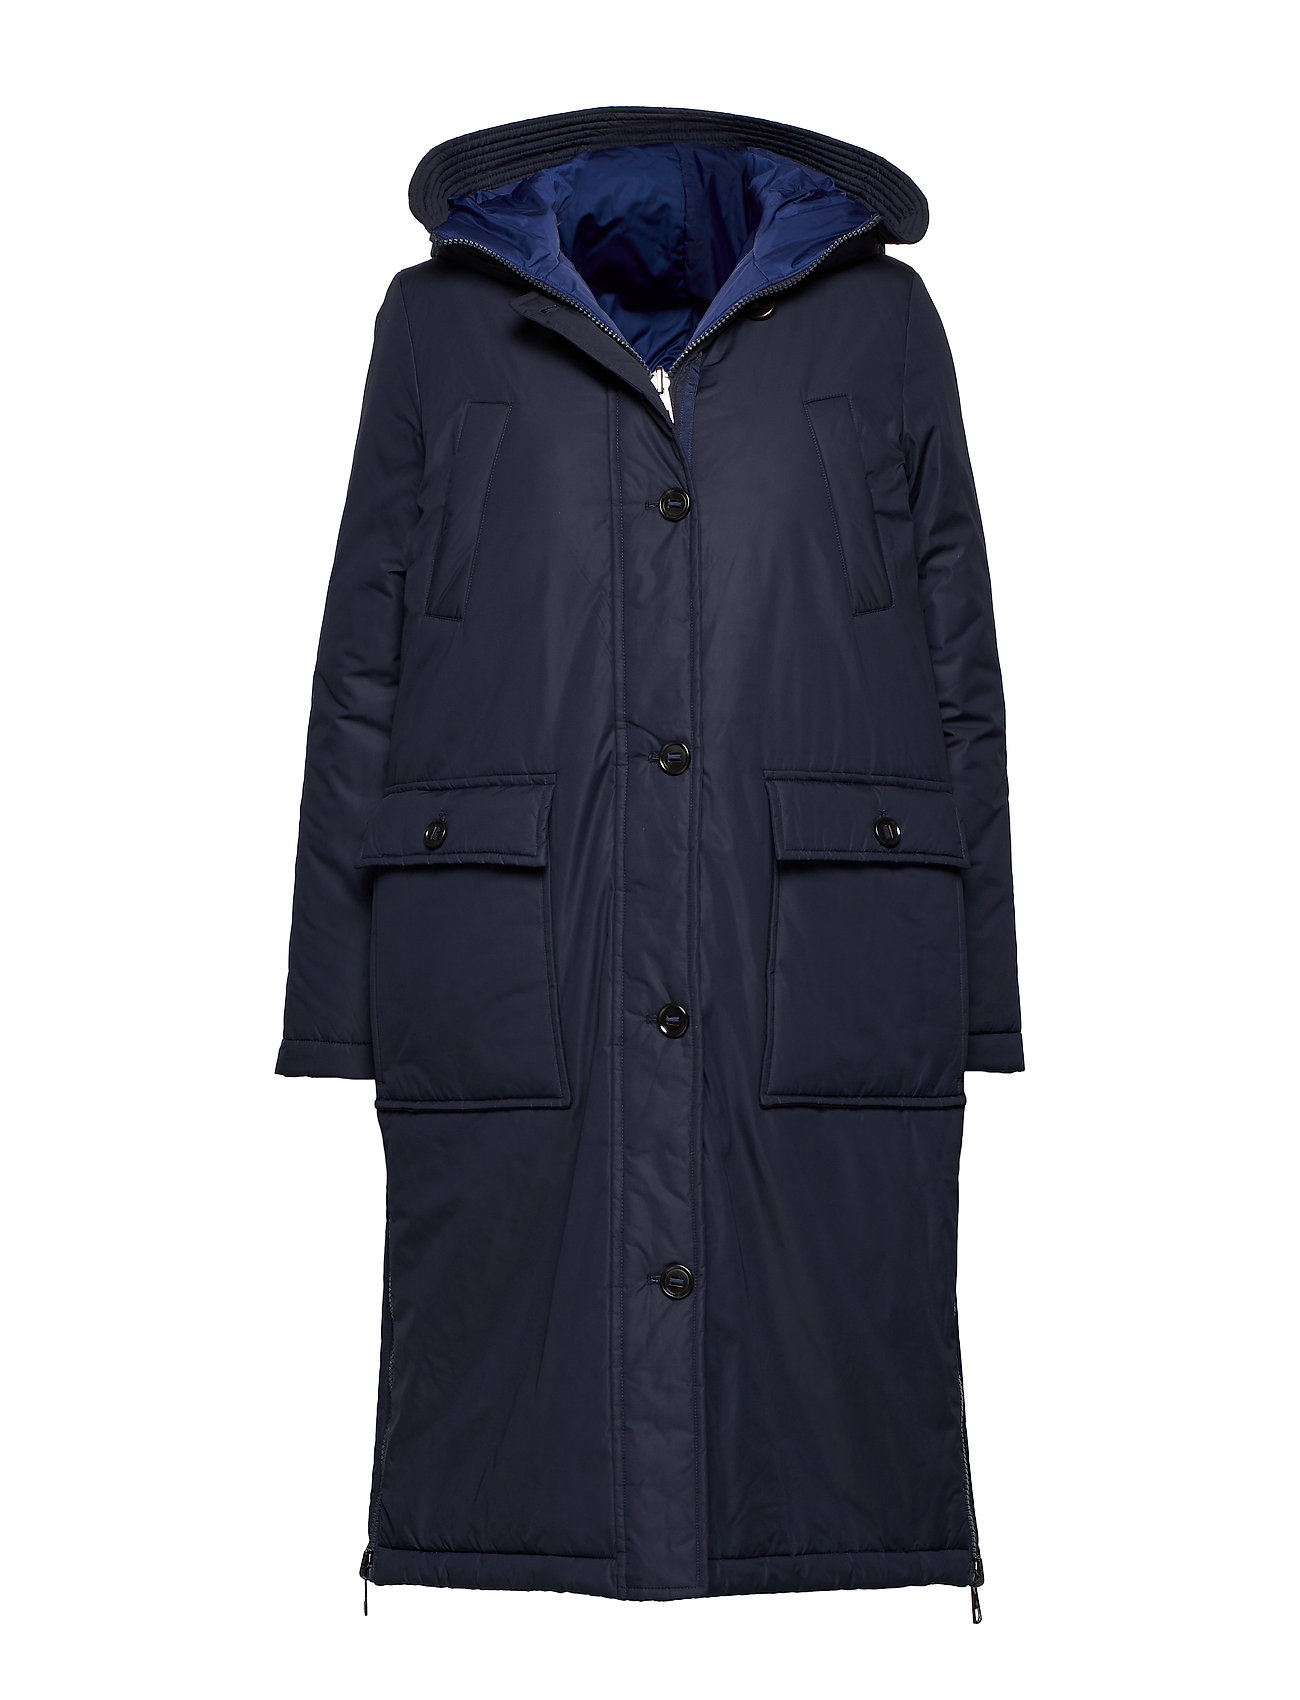 Marc O'Polo Big puffer coat, padded, reversible - MIDNIGHT BLUE